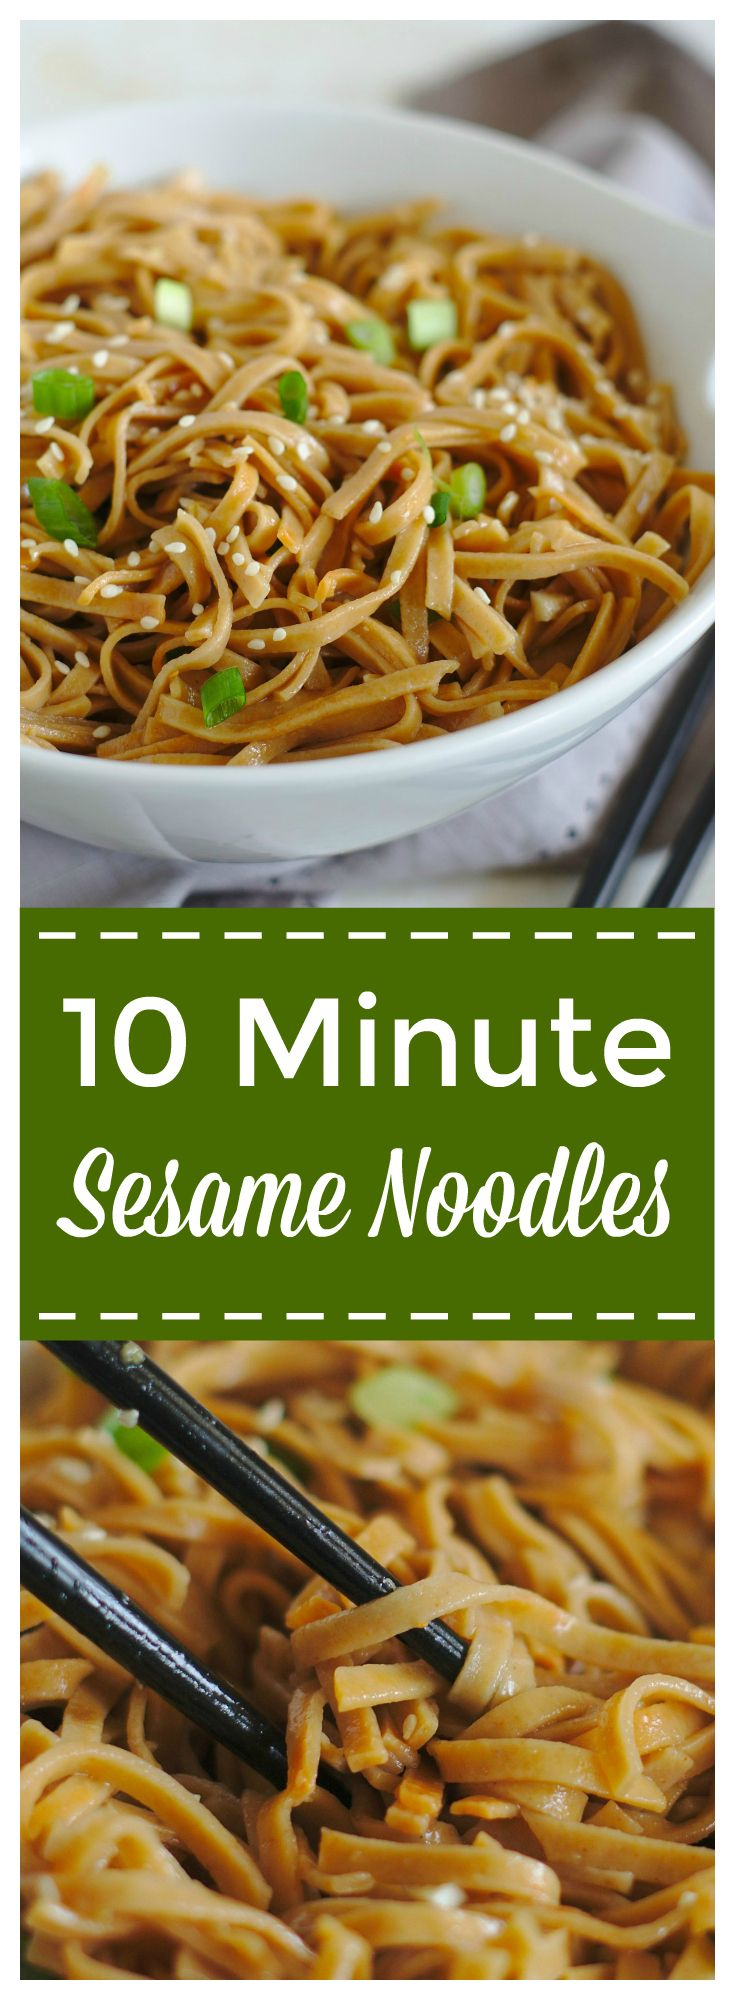 Sesame Noodles – A quick and easy 10 minute meal that is so delicious! Cold noodles topped with a light sesame sauce and tossed with sesame seeds and green onions. These sesame noodles are sure to be a new favorite! #noodles #asian #sesame #dinner